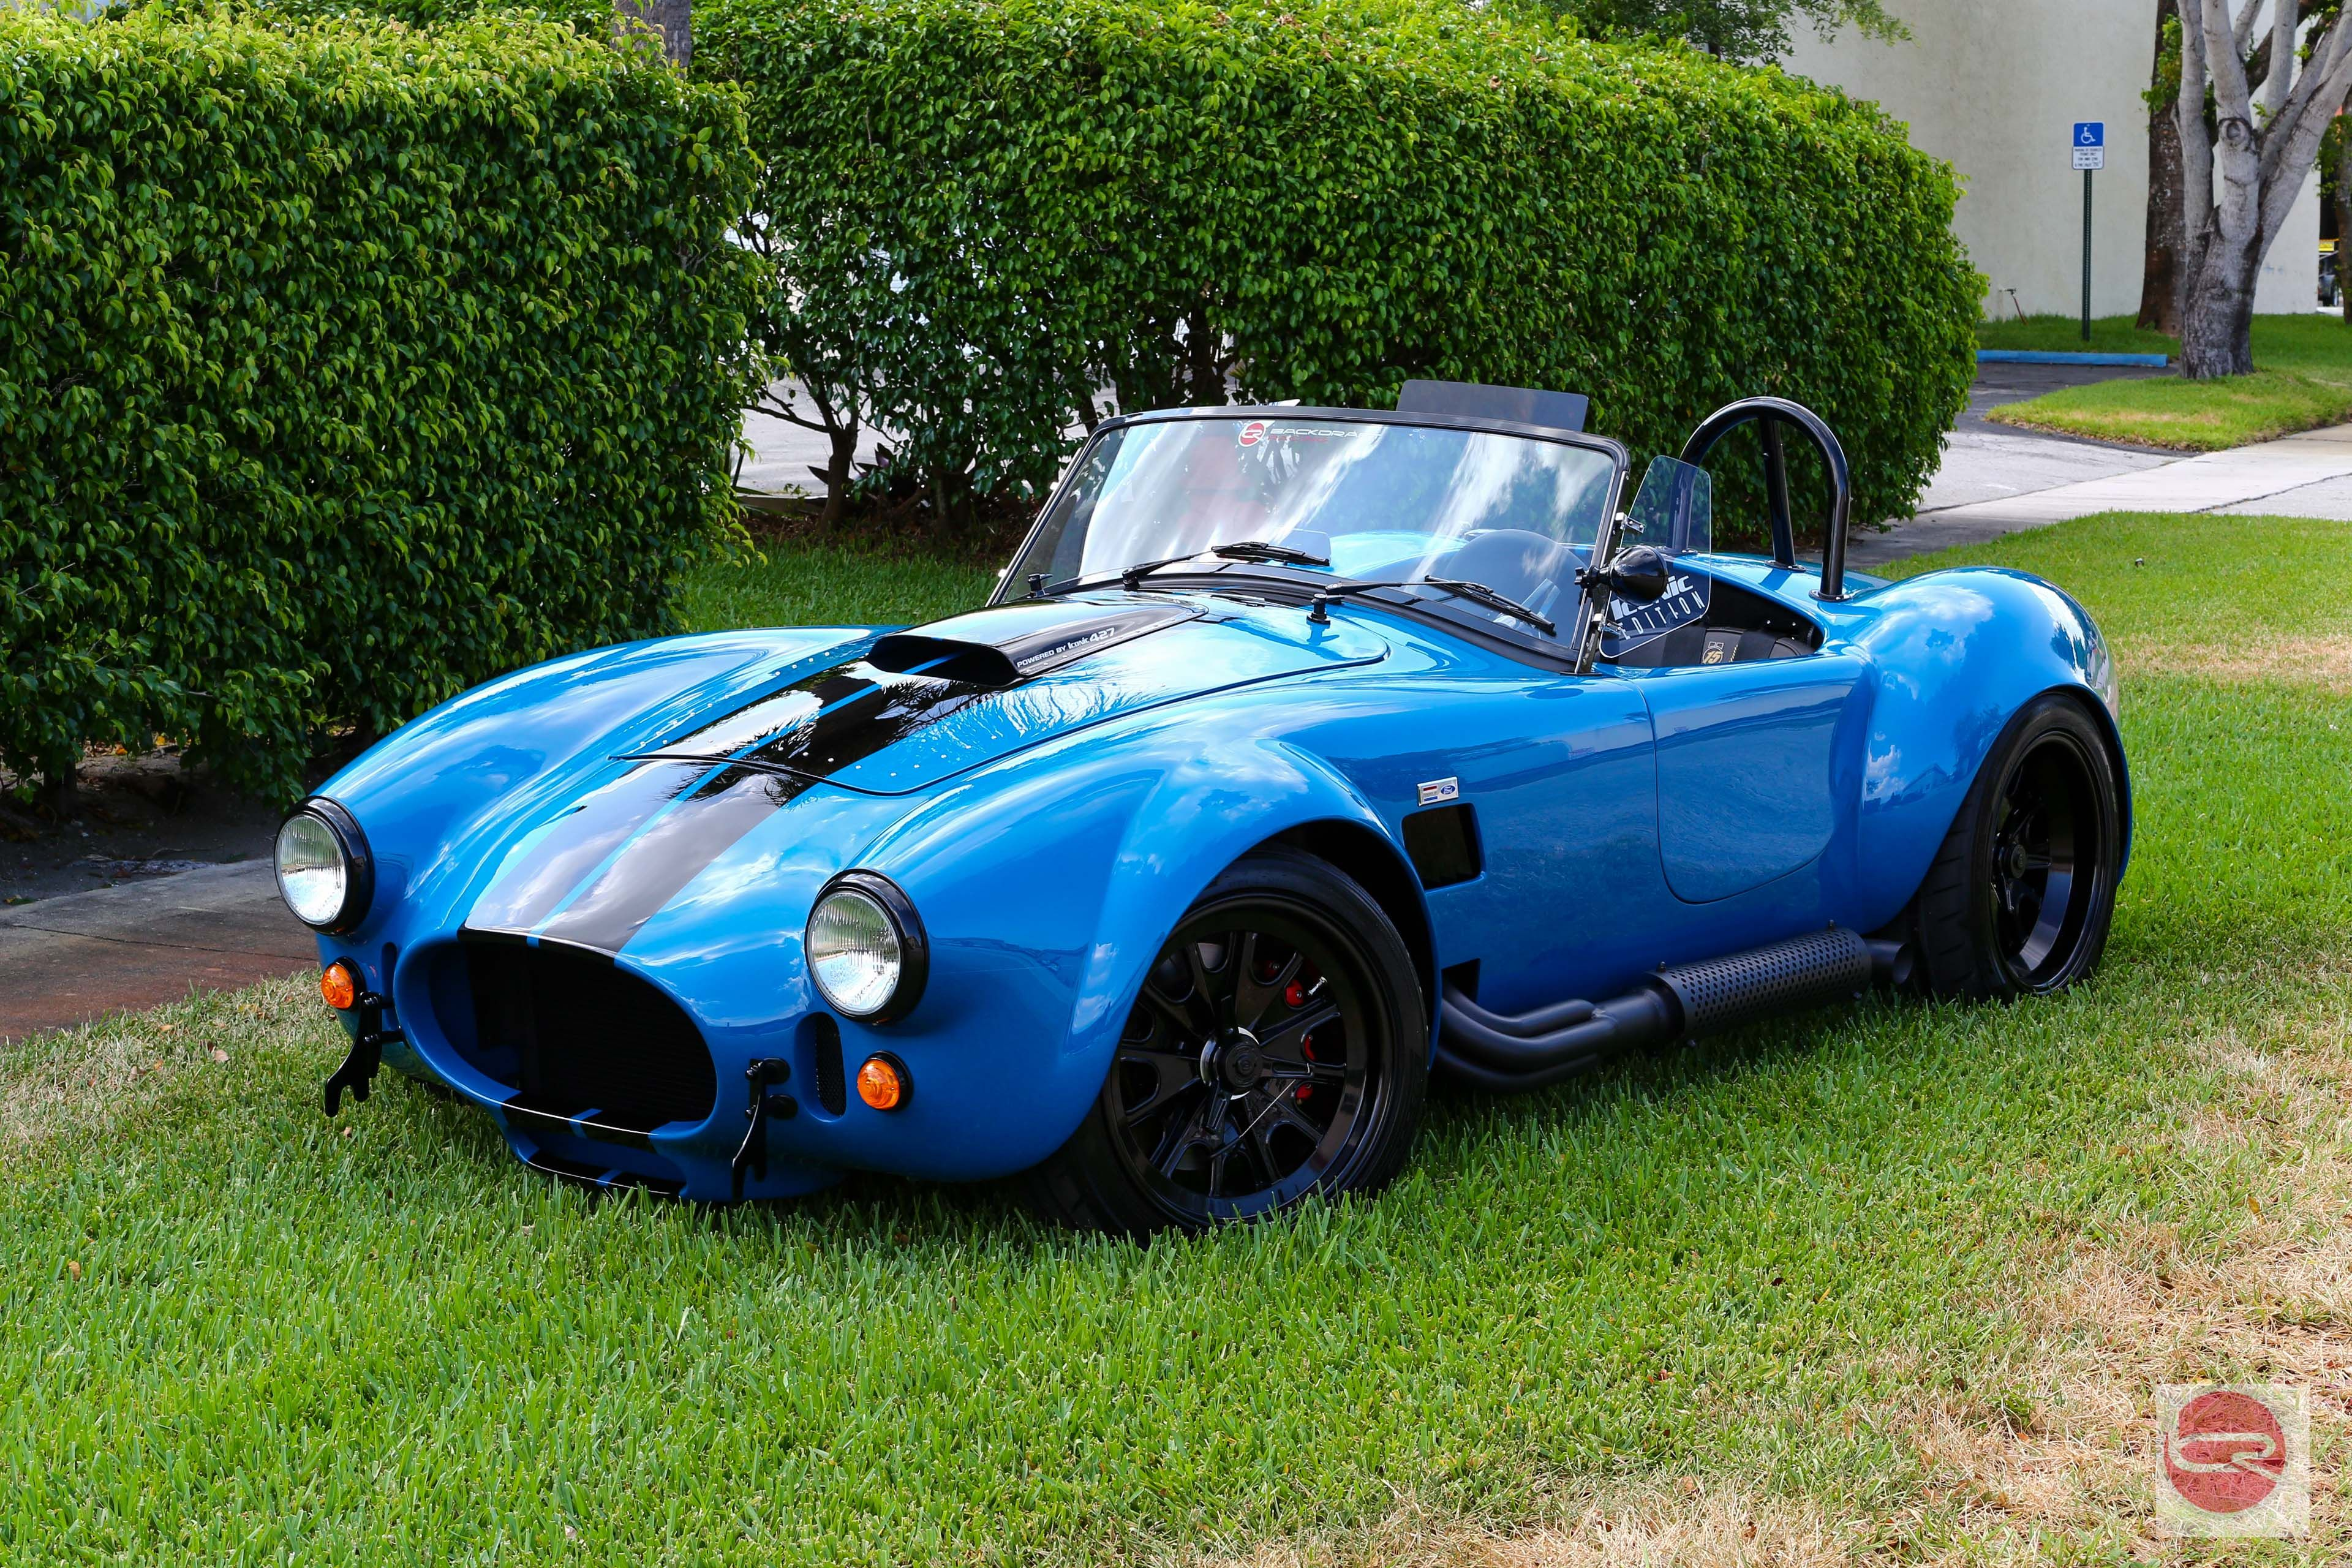 Kit Car Manufacturers >> Pin By Backdraft Racing On Backdraft Racing Cobra Kit Car